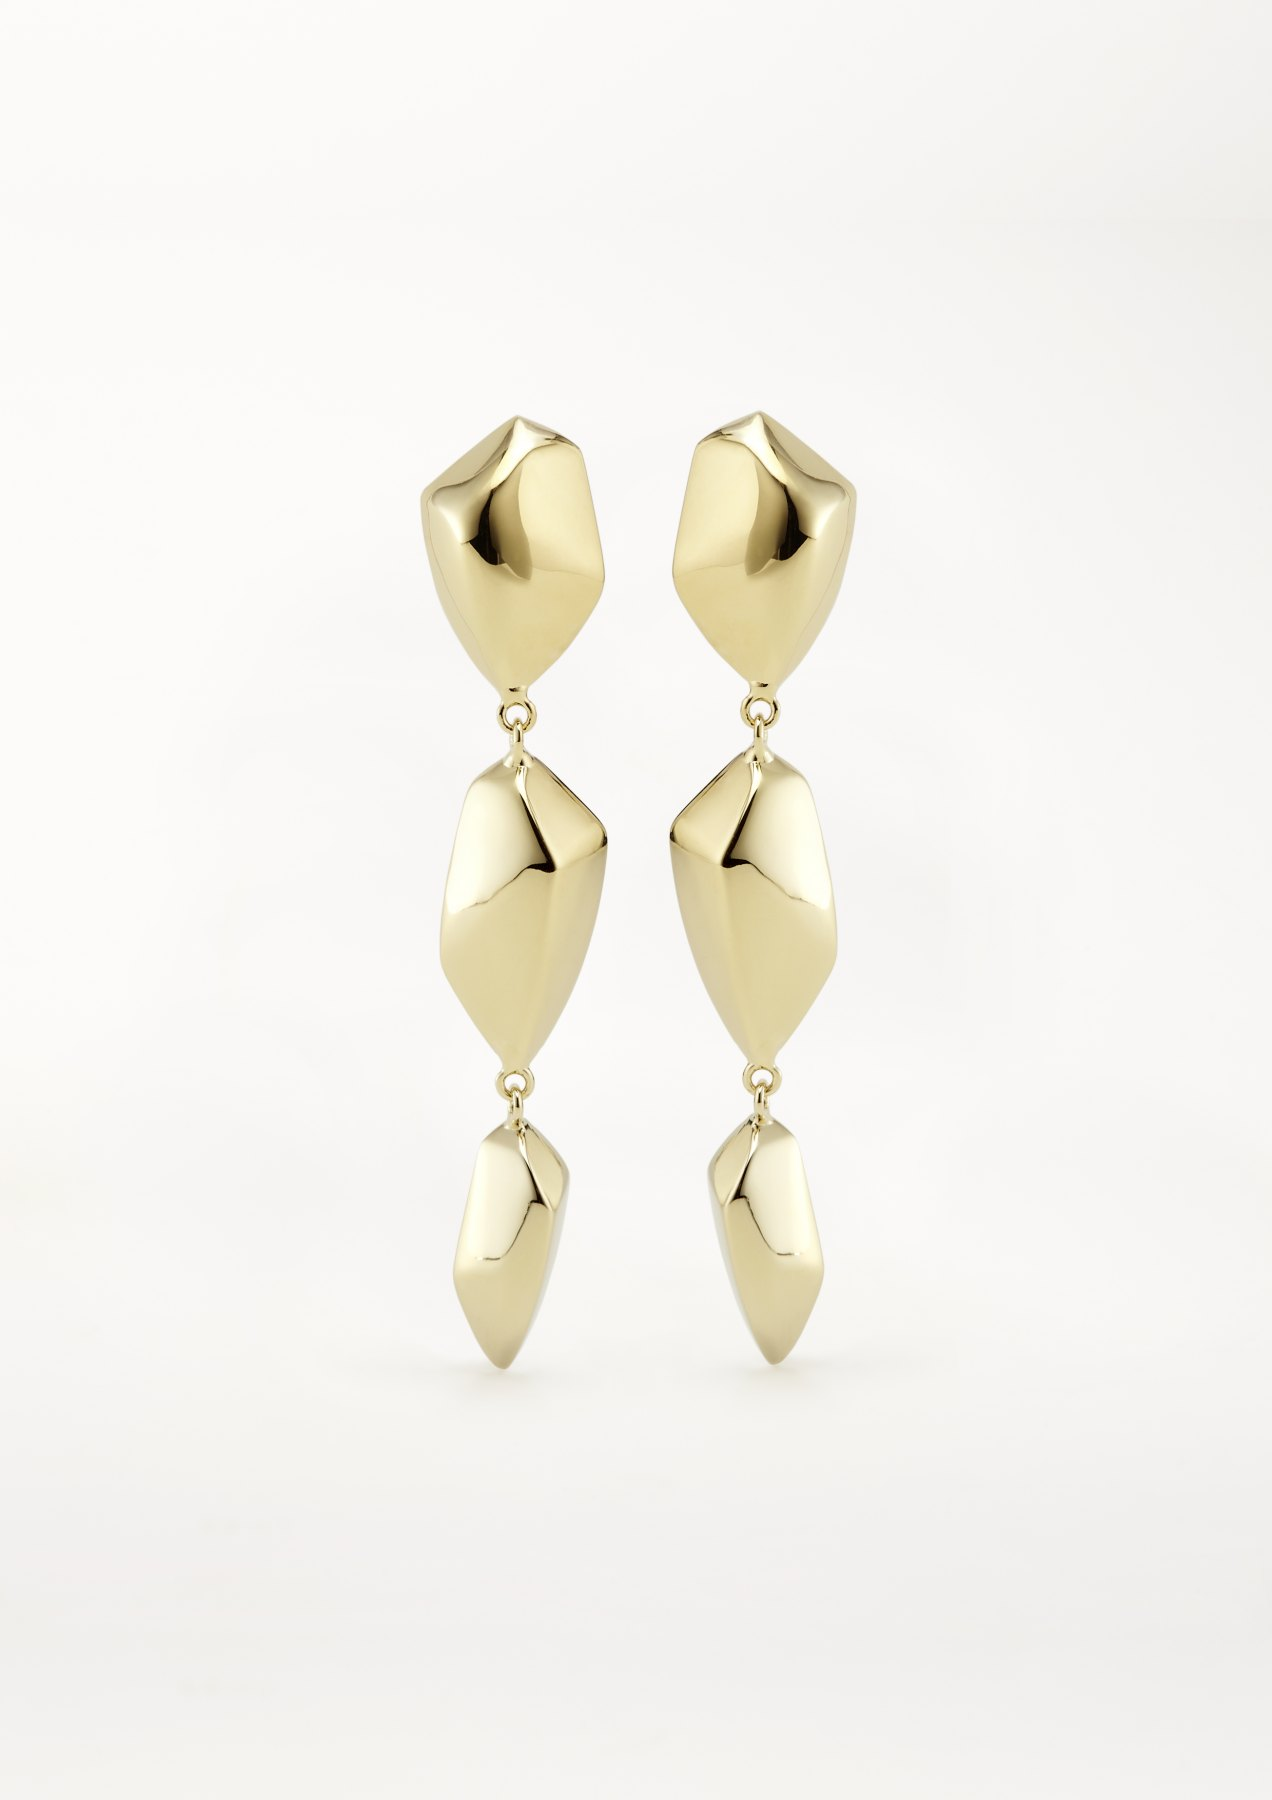 xenia bous jewellery washed stone 08 stars in the sky chandelier earrings gold silver